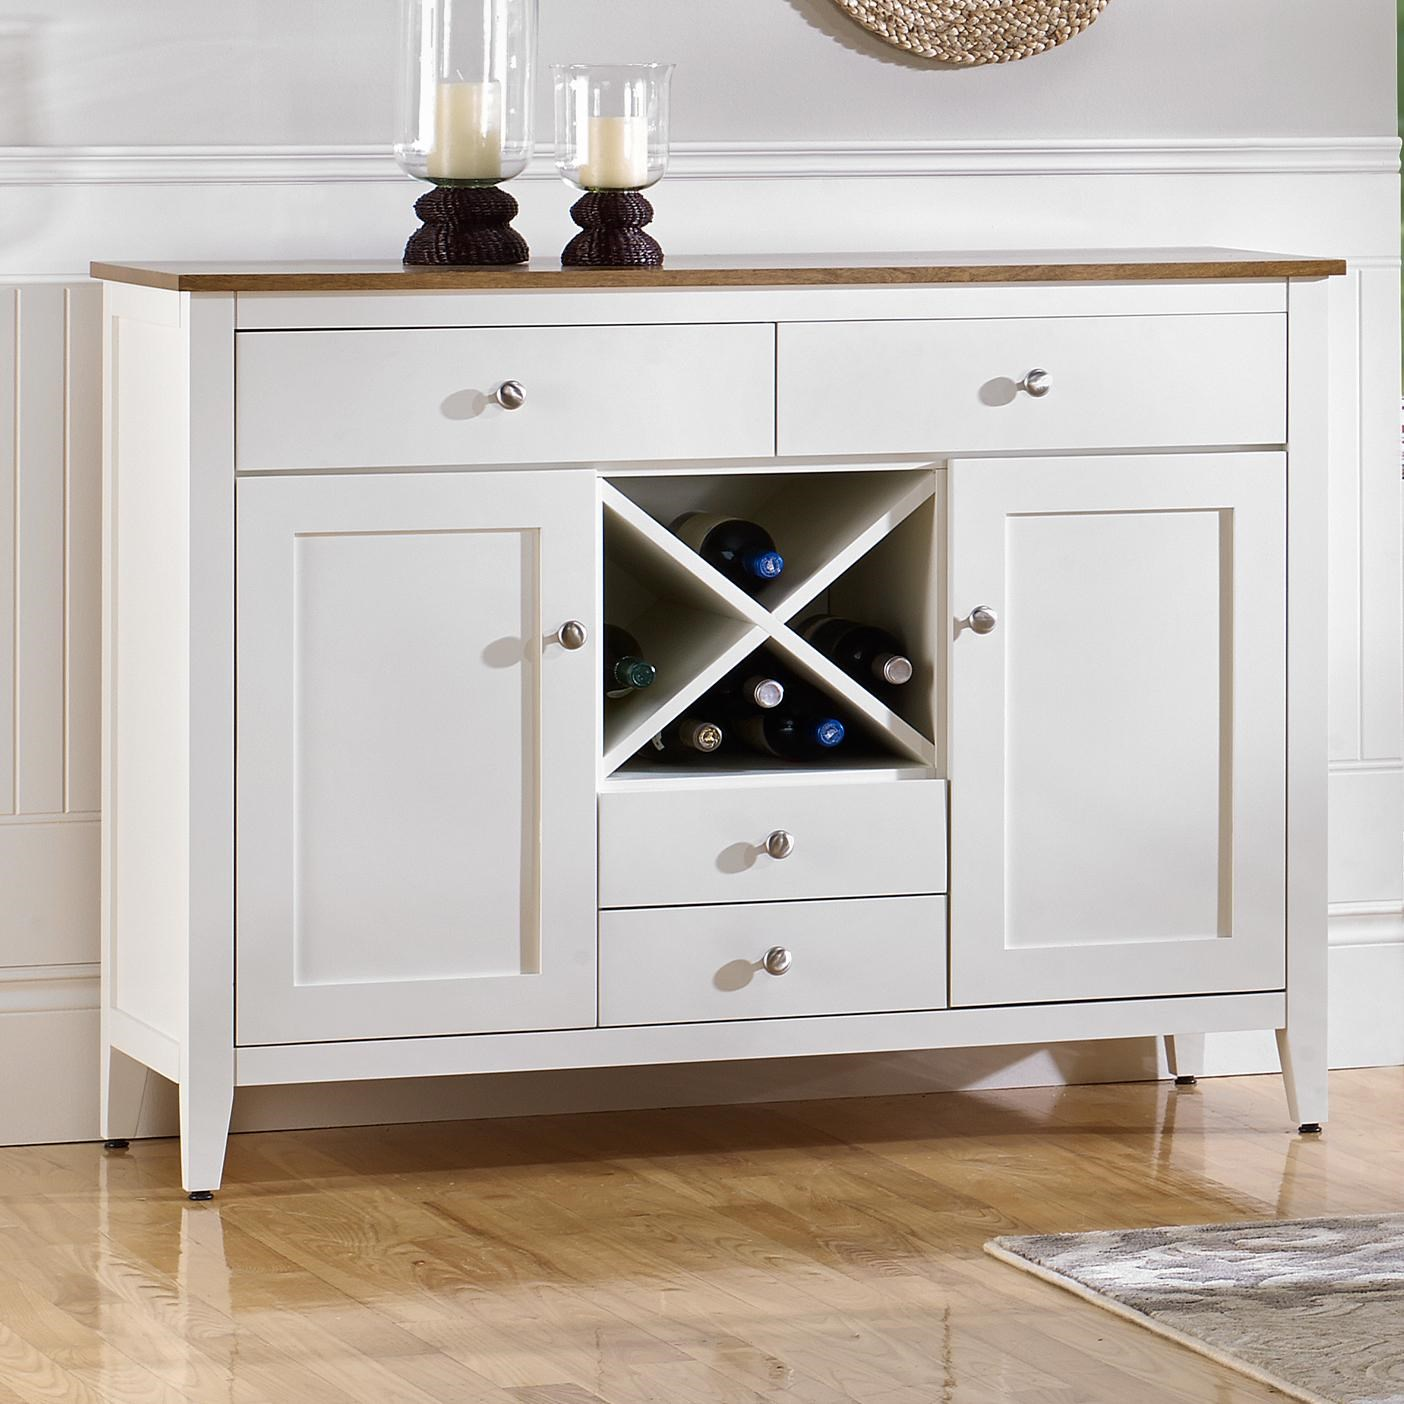 Buffet Sideboard With Wine Rack Canadel Gourmet Custom Dining Customizable Buffet With Wine Rack